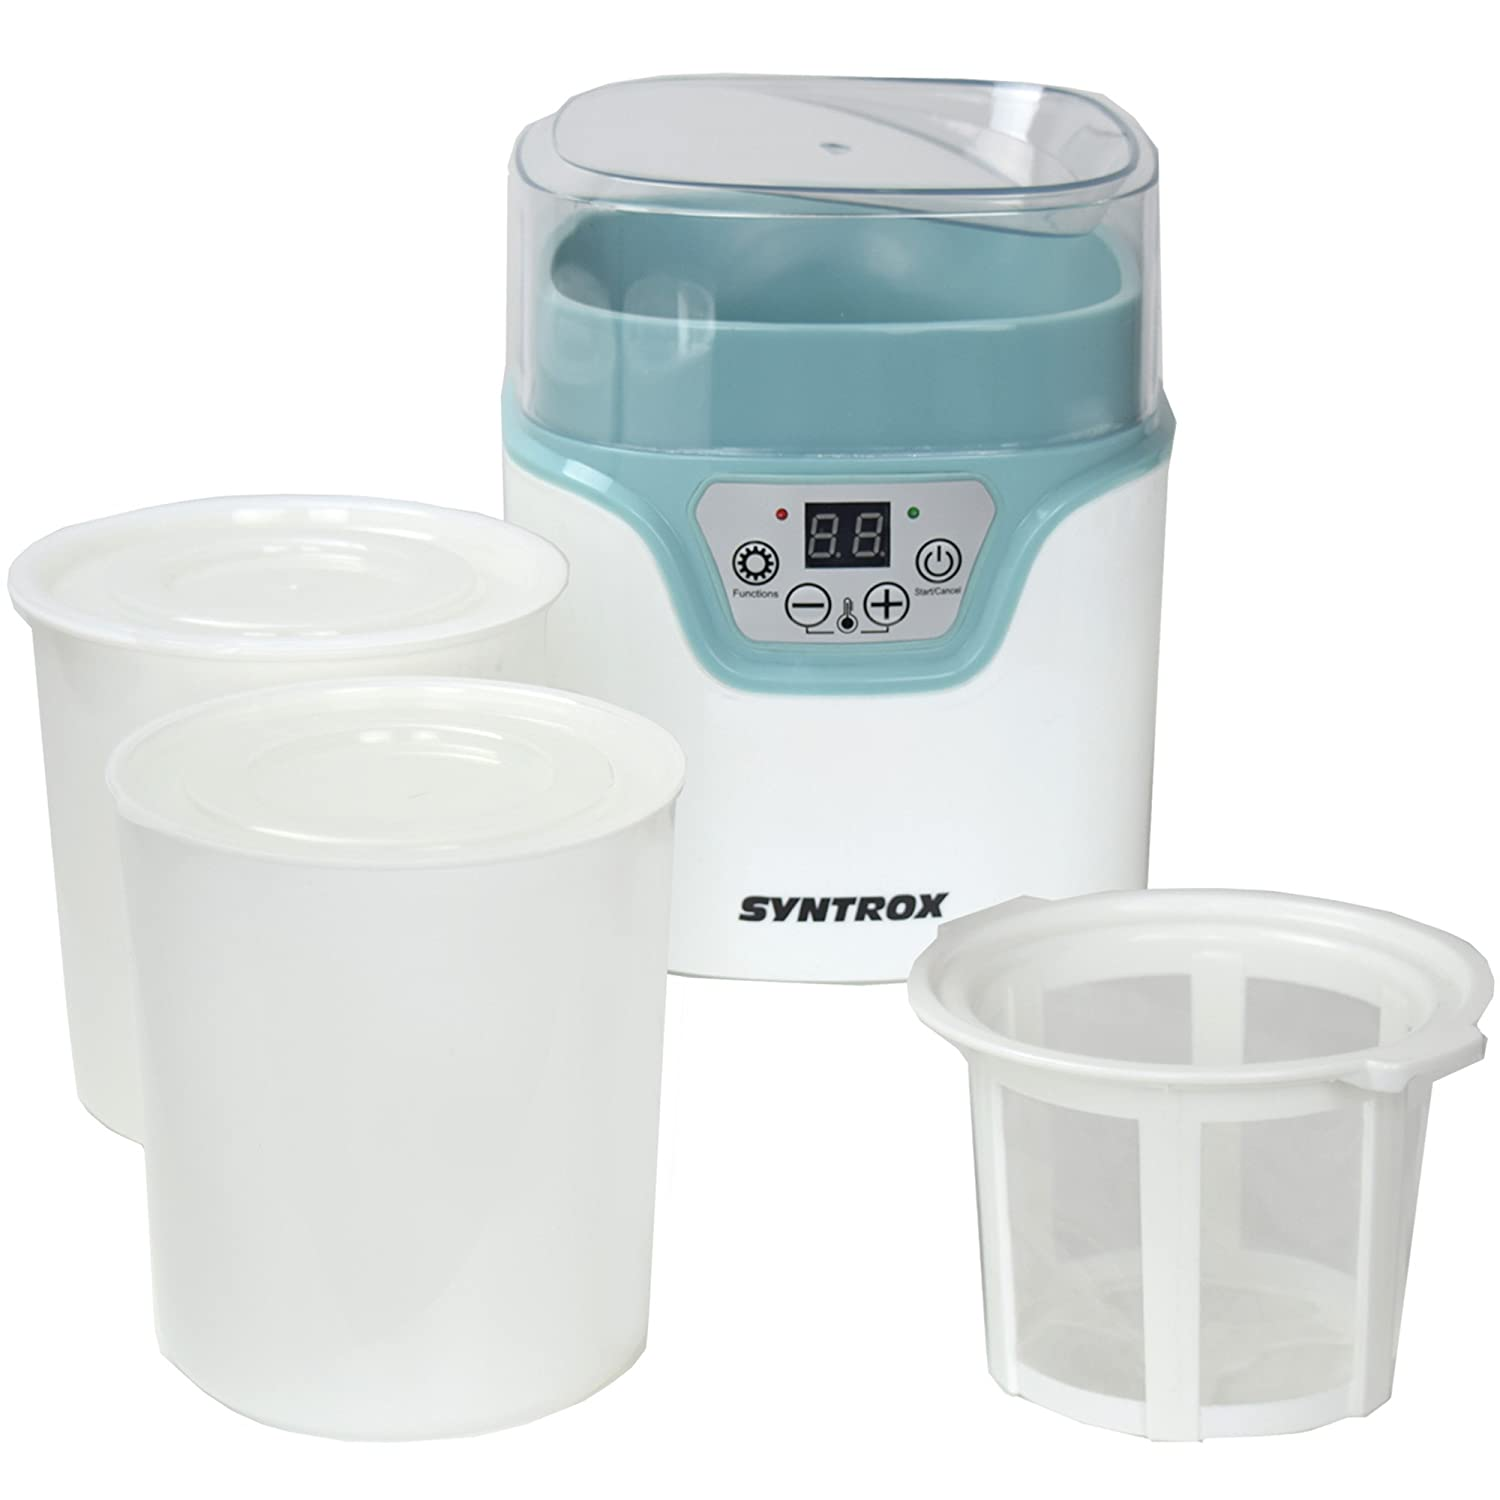 Syntrox Germany JMM-20 W-1.2L digitale 1,2 litri formaggio, del vino, Quark e yogurtiera